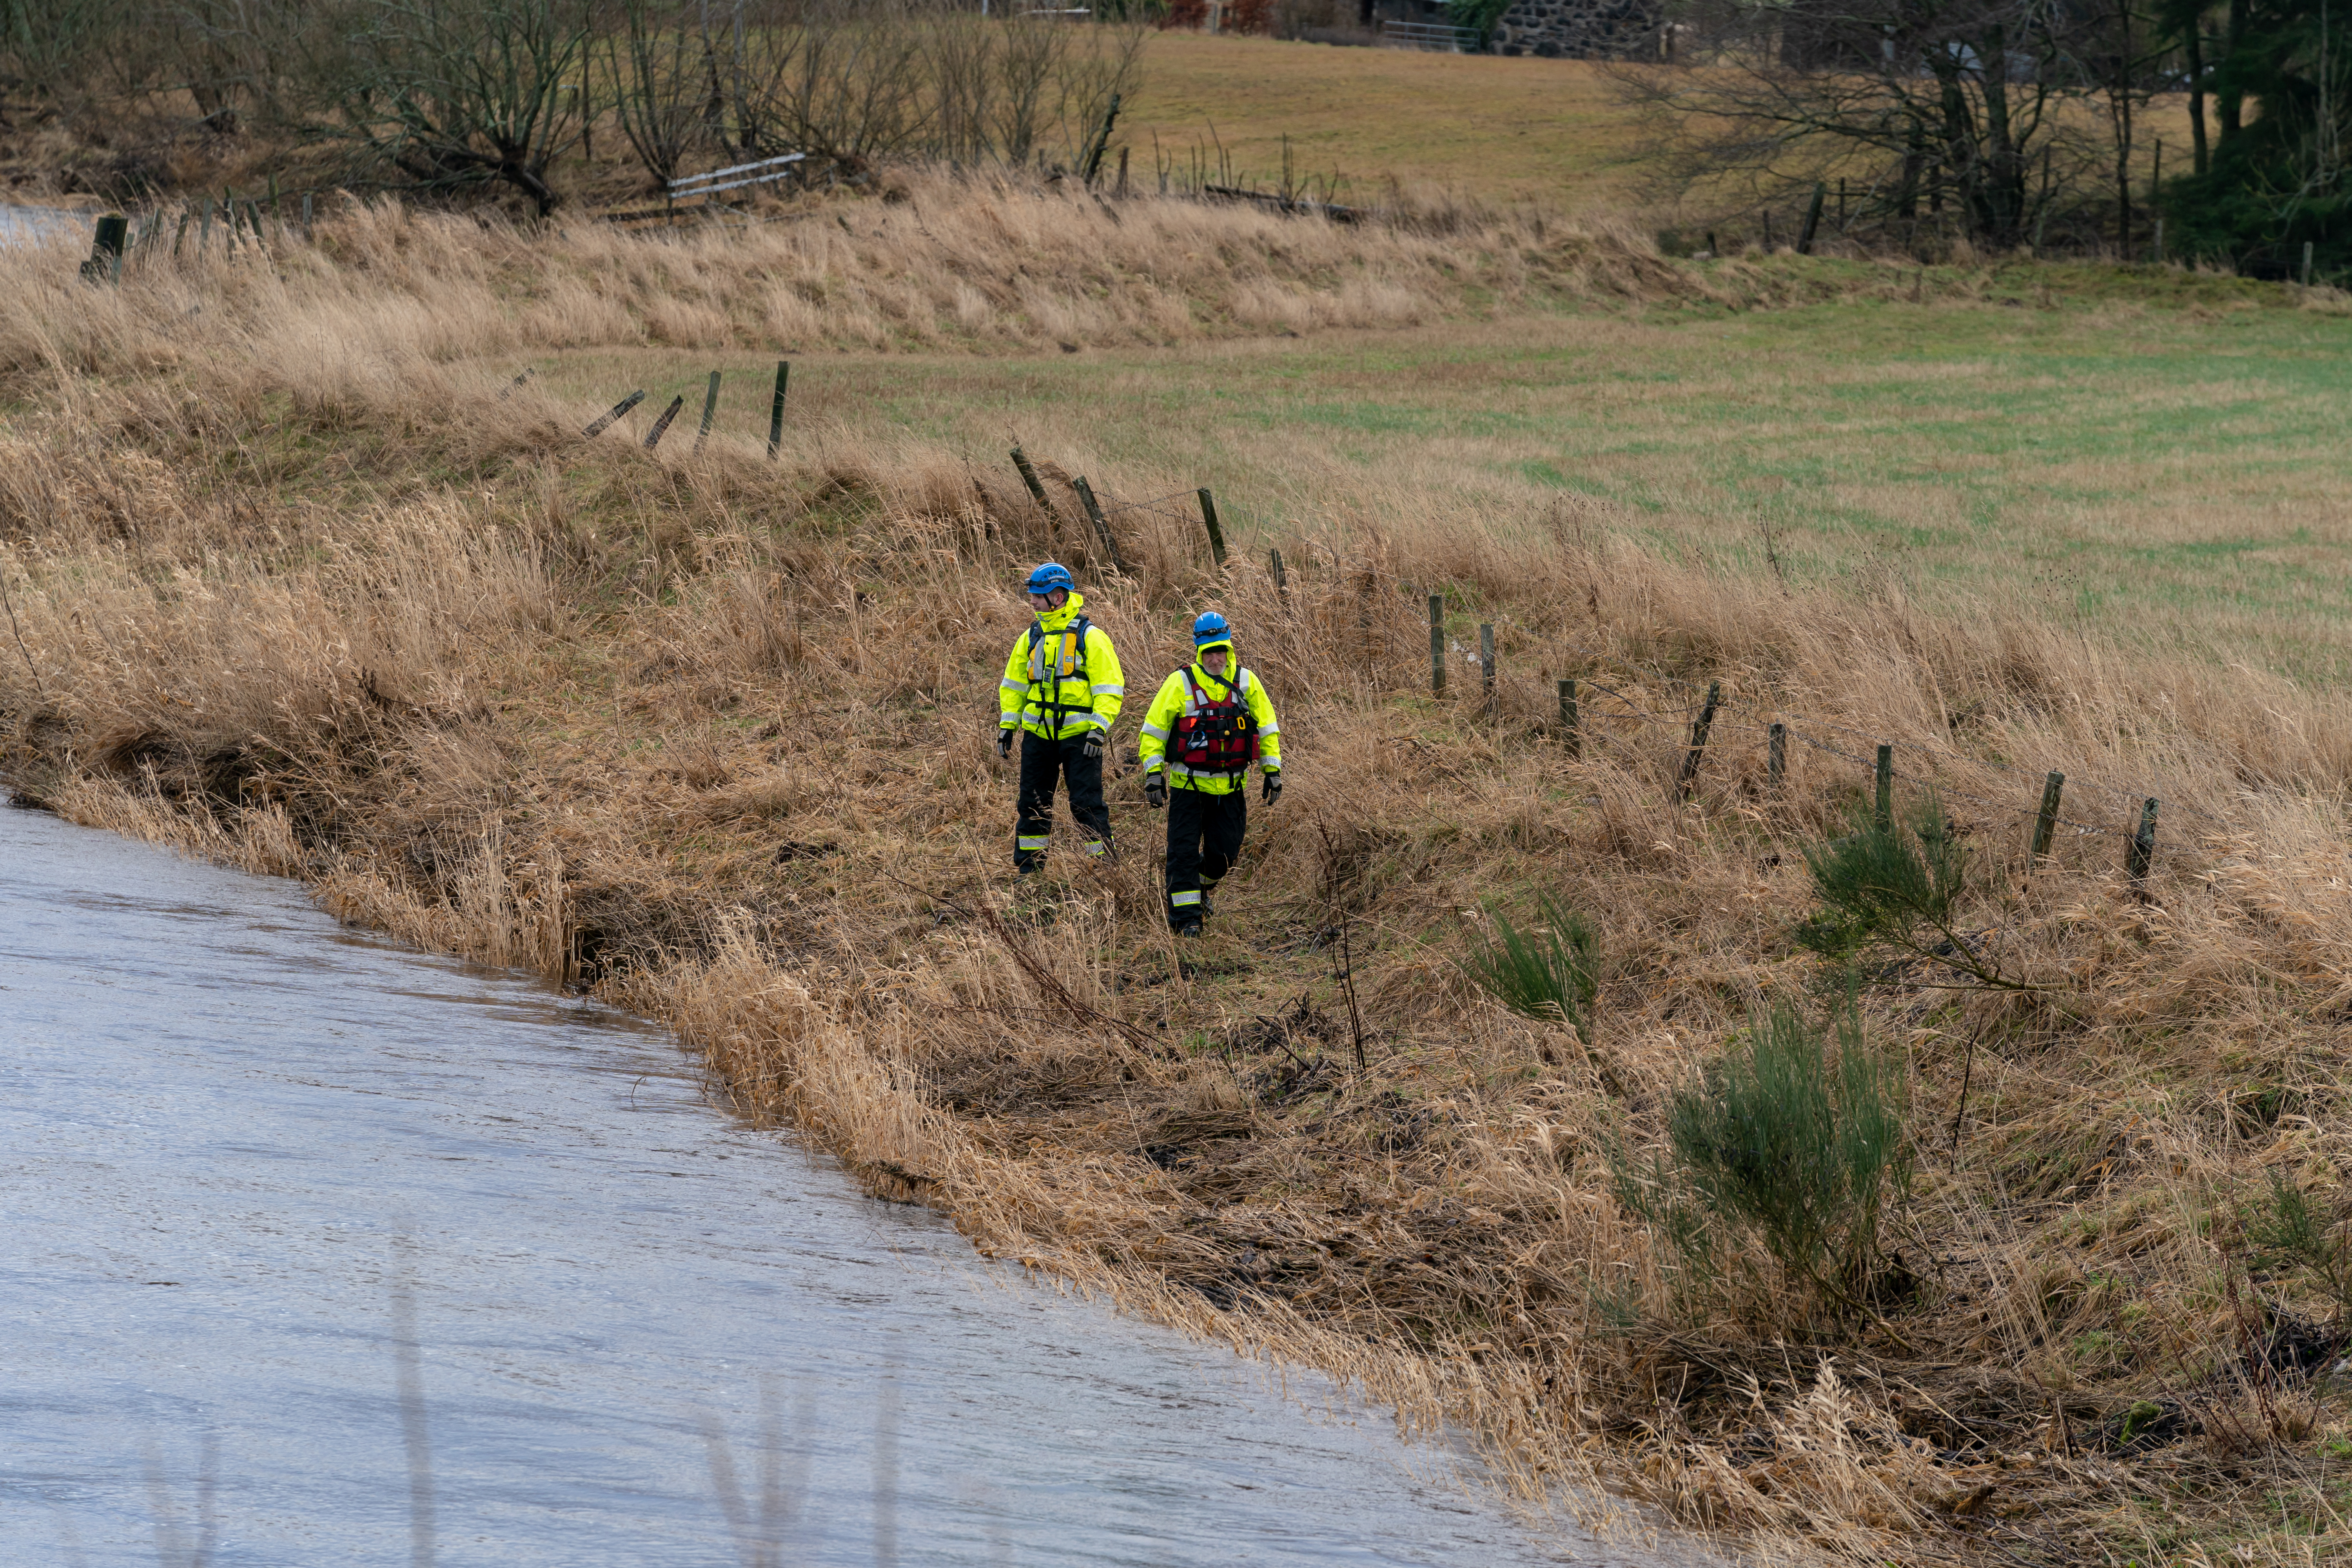 Police and Coastguard teams on the banks of the River Isla in the Keith area of Moray.